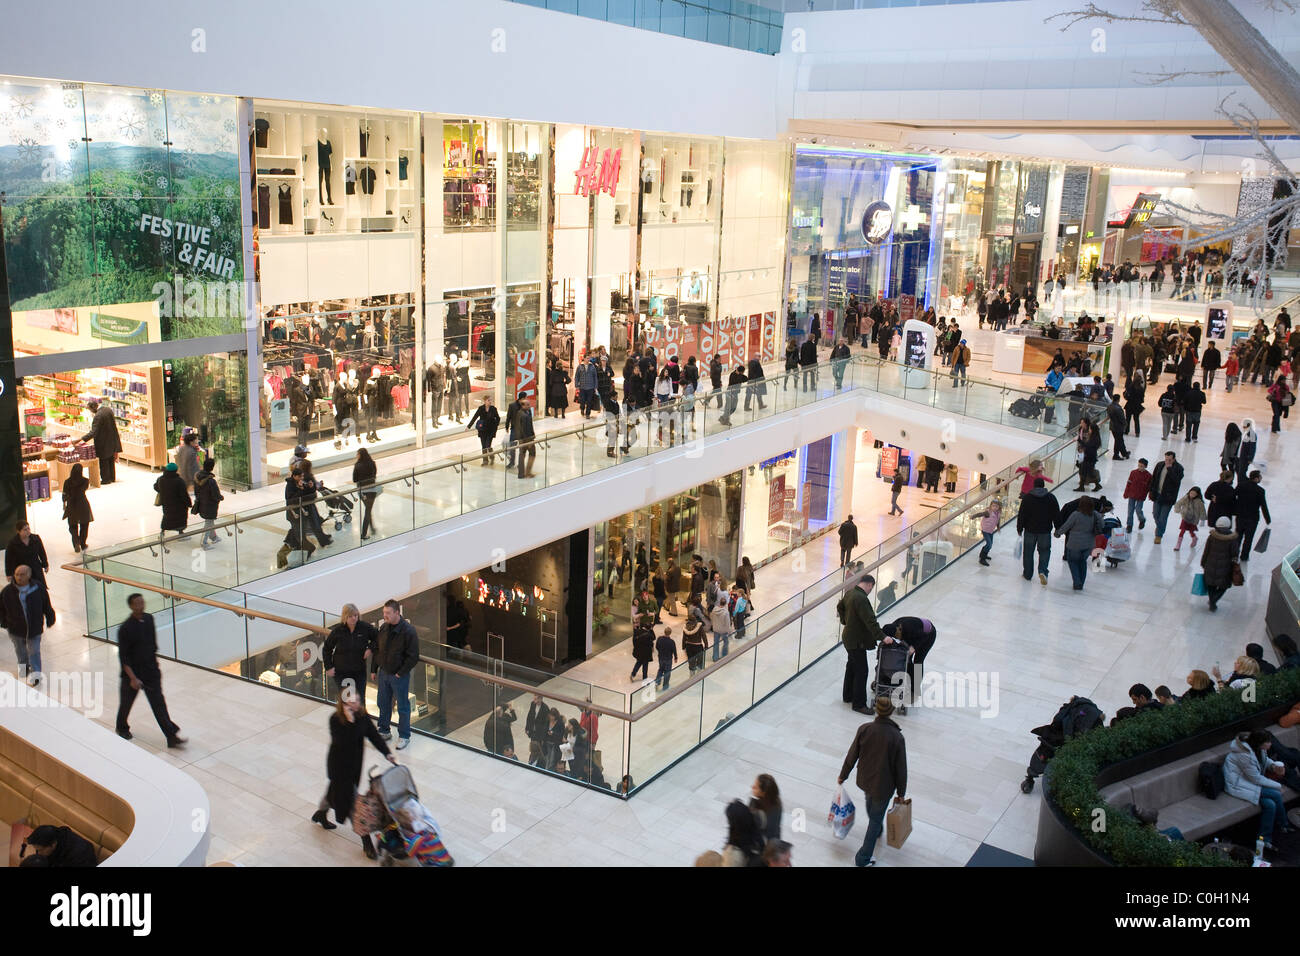 Shoppers looking for Sale bargains at Westfield shopping centre in Shepard's Bush, London, England UK. Photo:Jeff - Stock Image